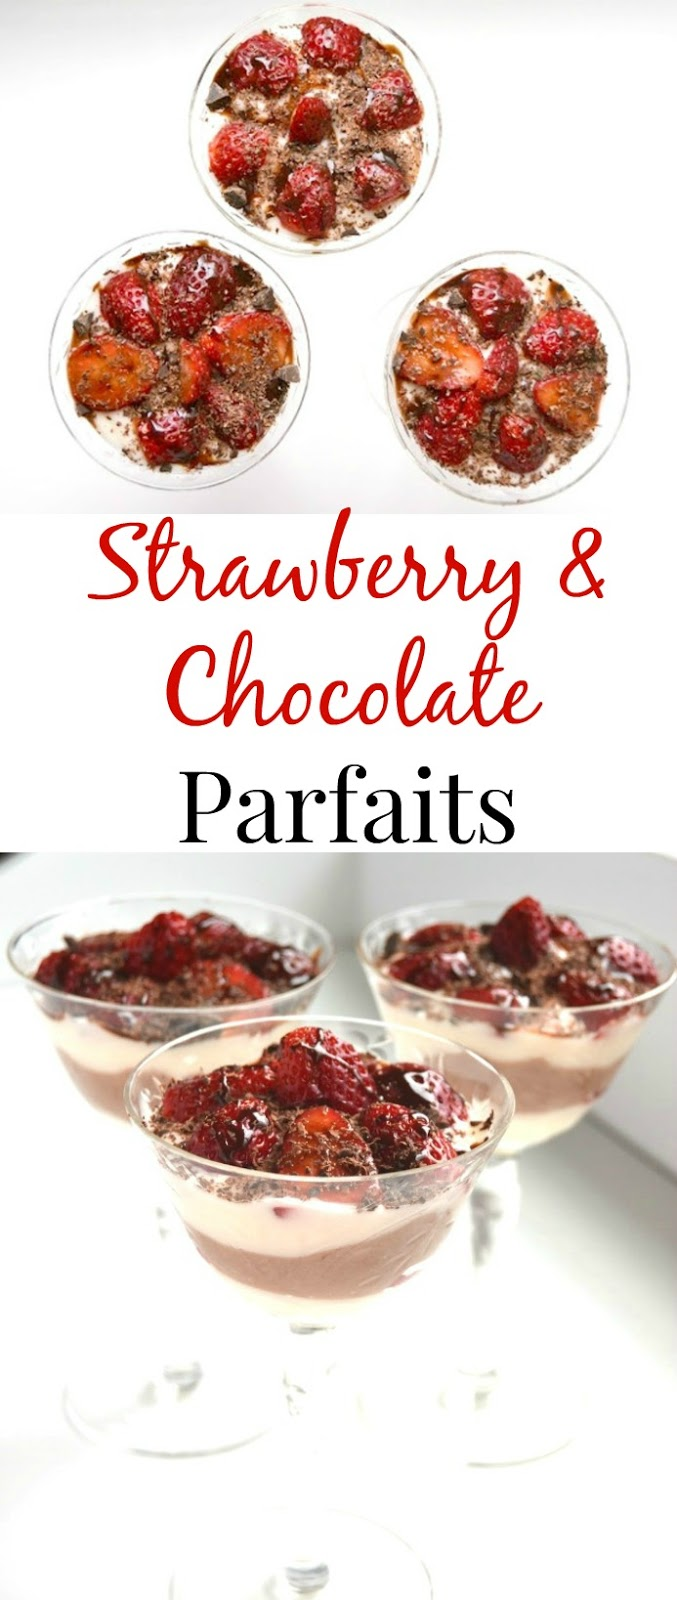 These Strawberry and Chocolate Parfaits only take 10 minutes to make and is healthier than many desserts made with yogurt, strawberries and chocolate! www.nutritionistreviews.com